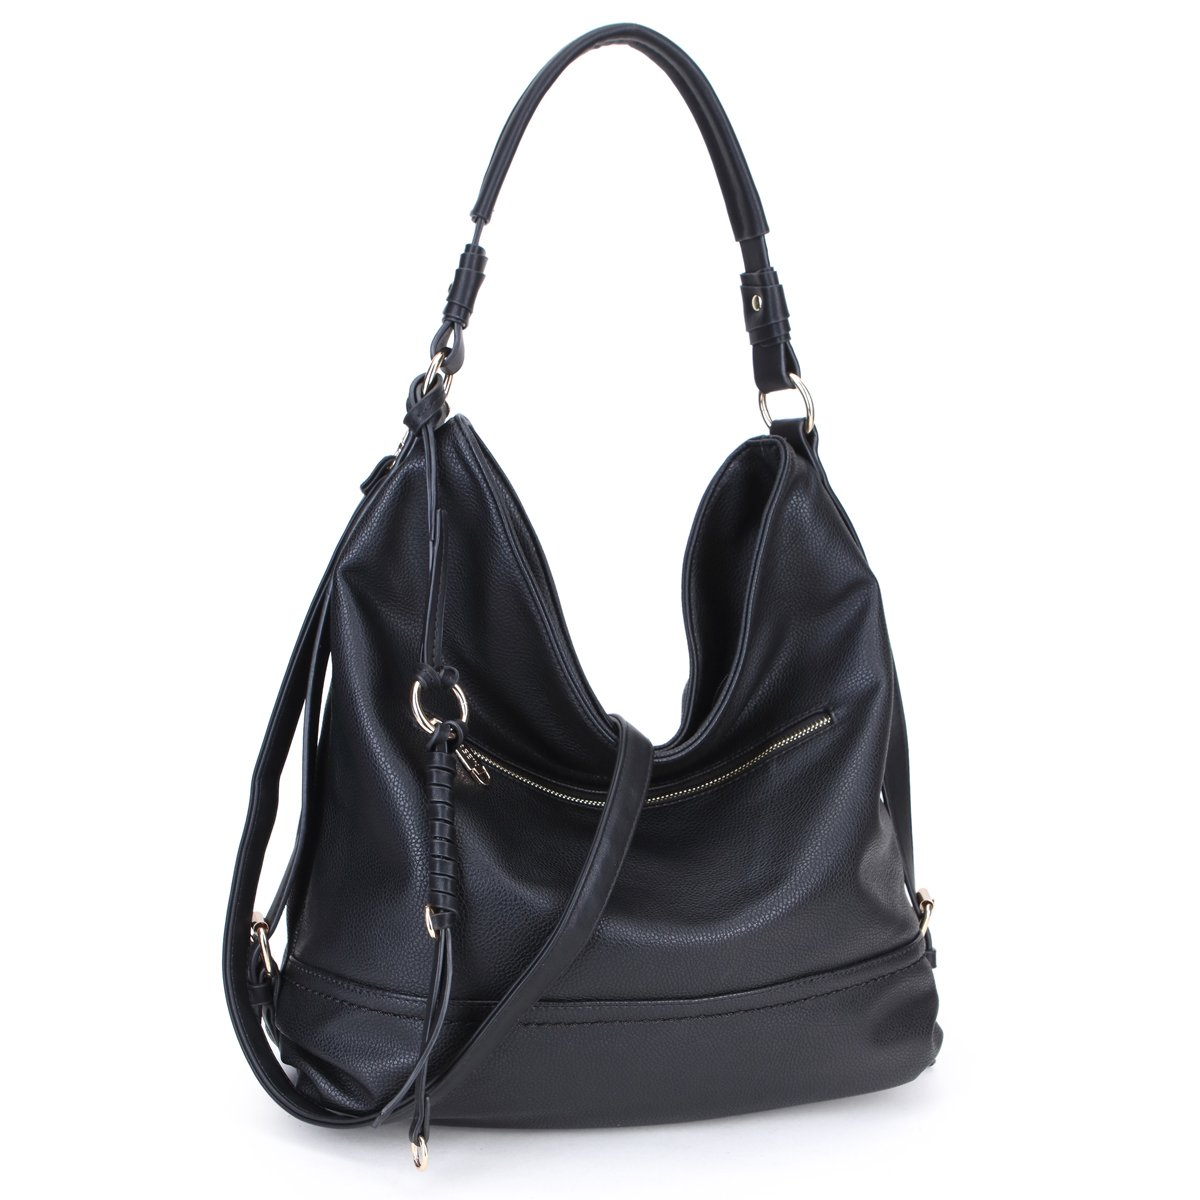 ee7a86af085 Amazon.com  DASEIN Women Handbags Top-Handle Fashion Hobo Tote Bags PU  Leather Shoulder Satchel Bags  Shoes